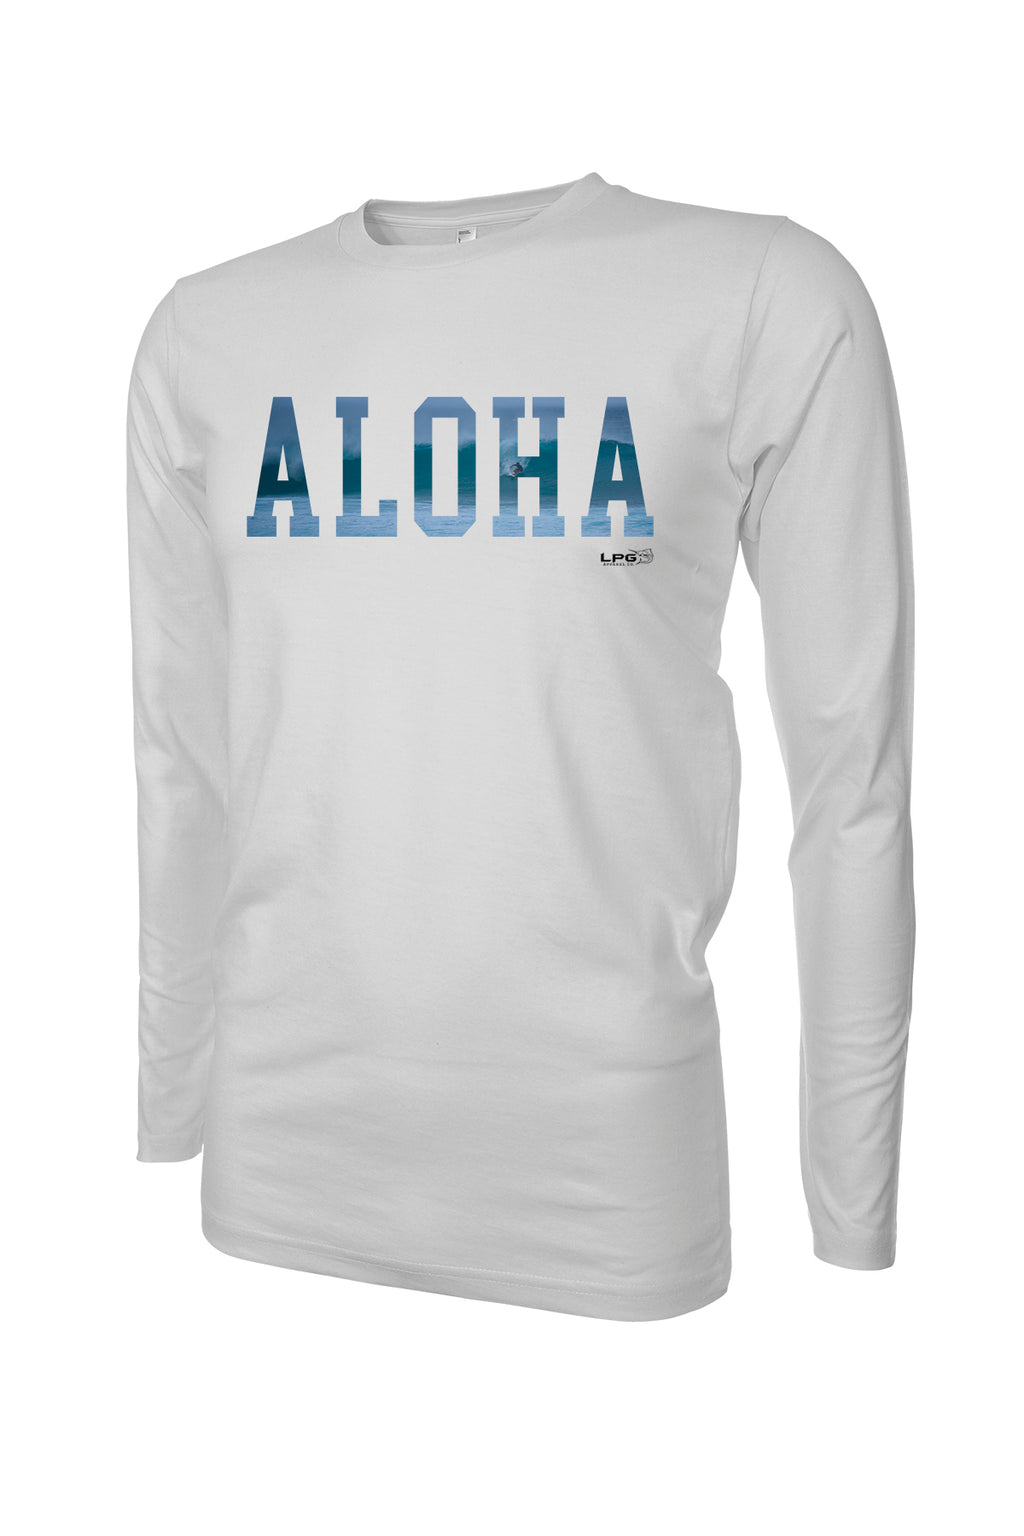 LPG Apparel Co. ALOHA Pipeline Surfer  Rashguard LS Performance UPF 50 Unisex Shirt